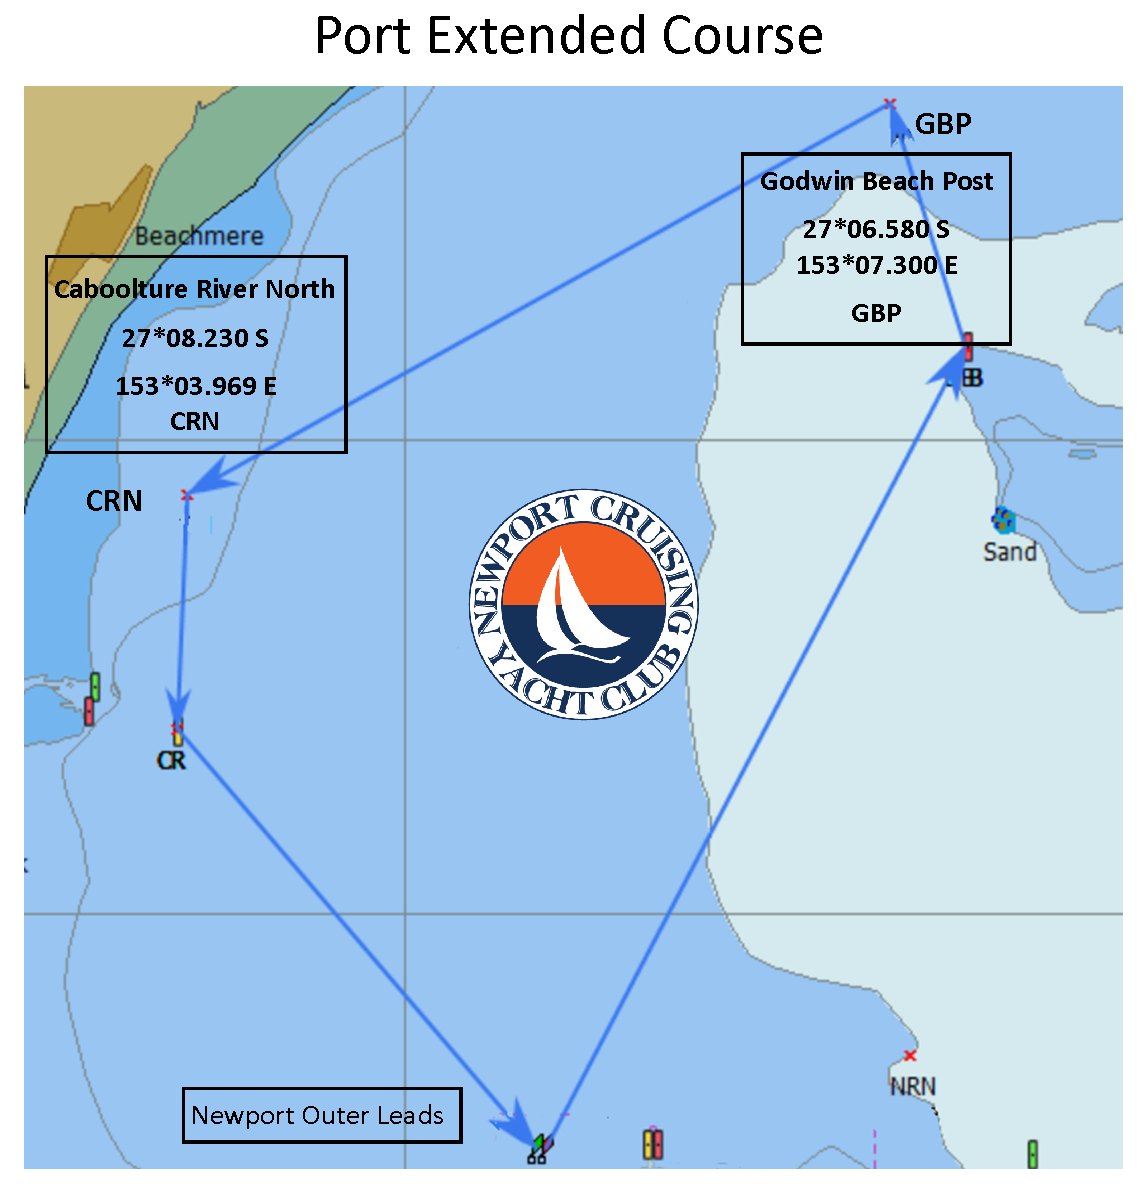 Port Extended Course